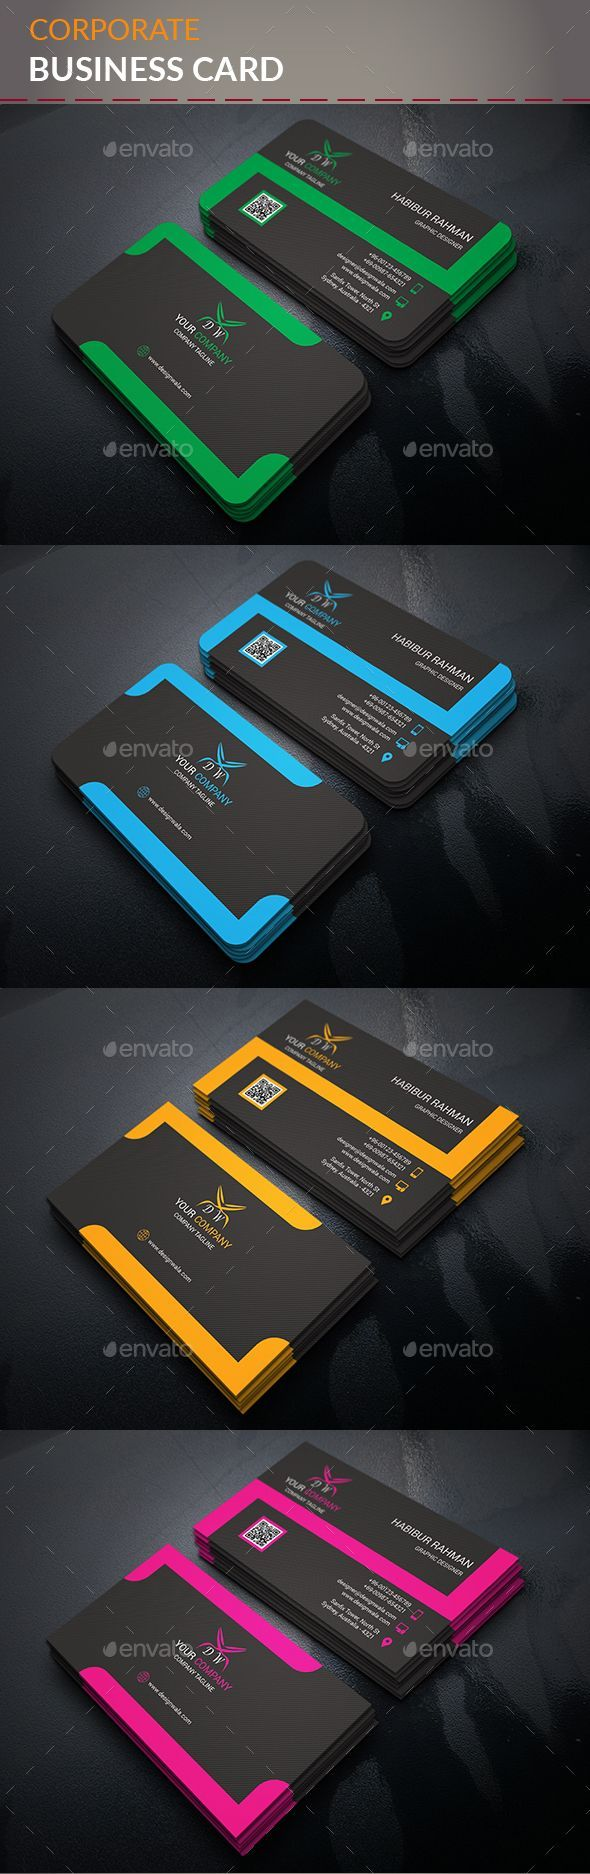 9365 best professional business cards images on pinterest business corporate business card corporate business cards download here httpsgraphicriver reheart Images